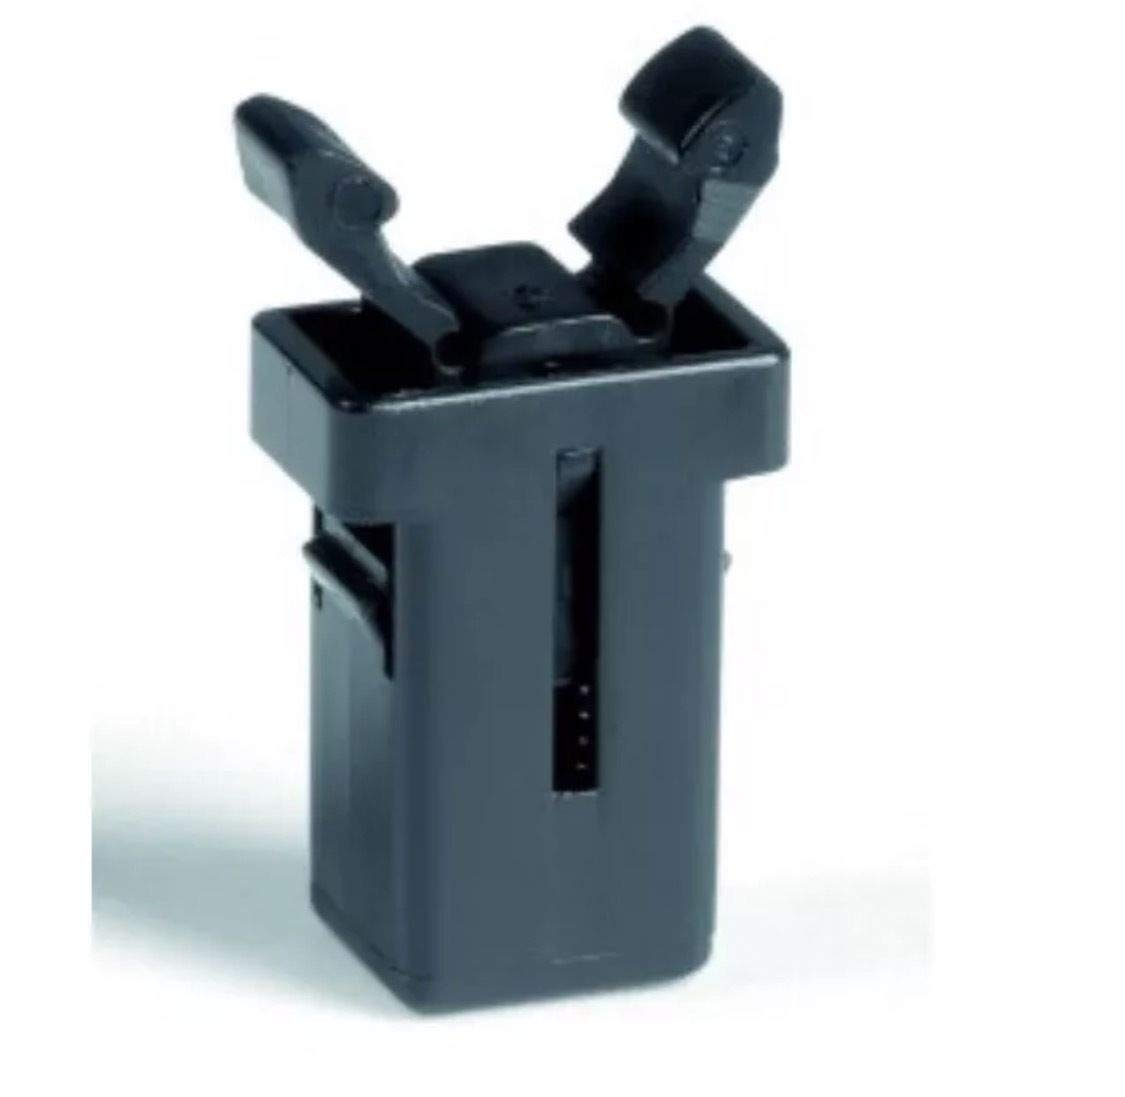 Credence 3x Replacement catch Brabantia compatible Touch lat clip Lid bin Oakland Mall